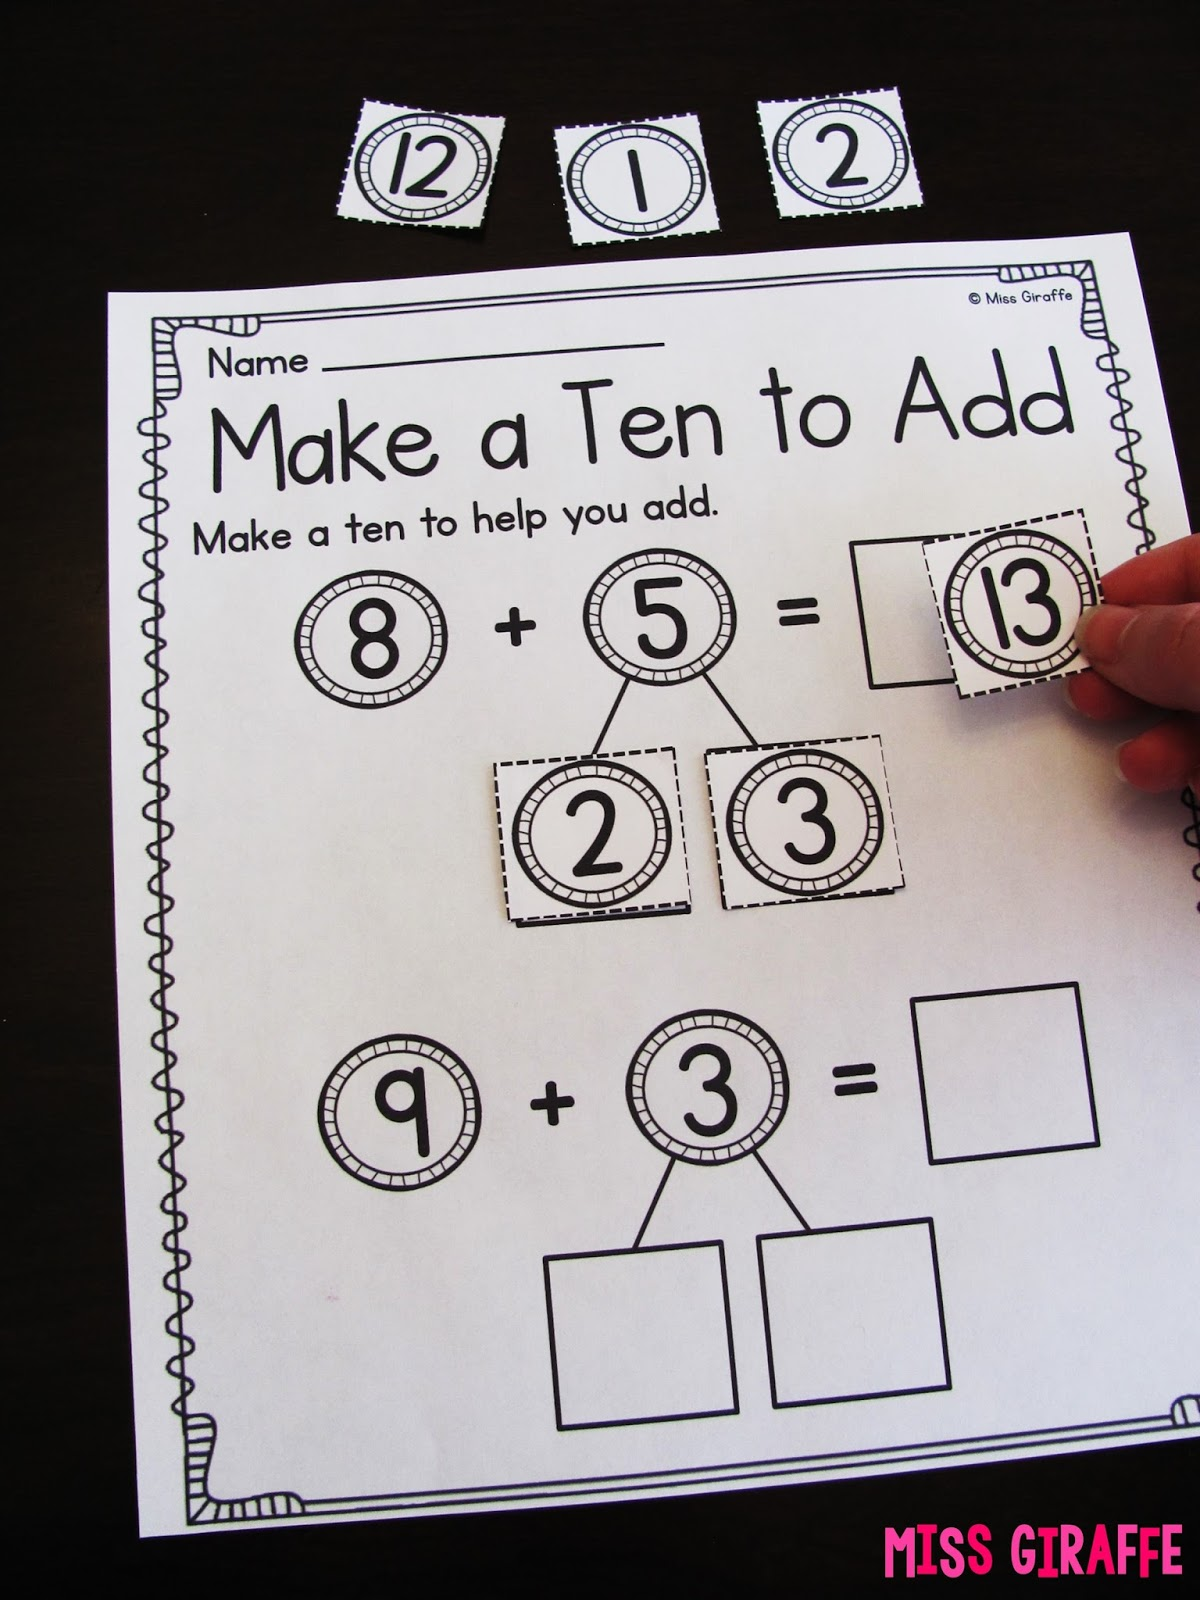 worksheet Ways To Make A Number Worksheet miss giraffes class making a 10 to add